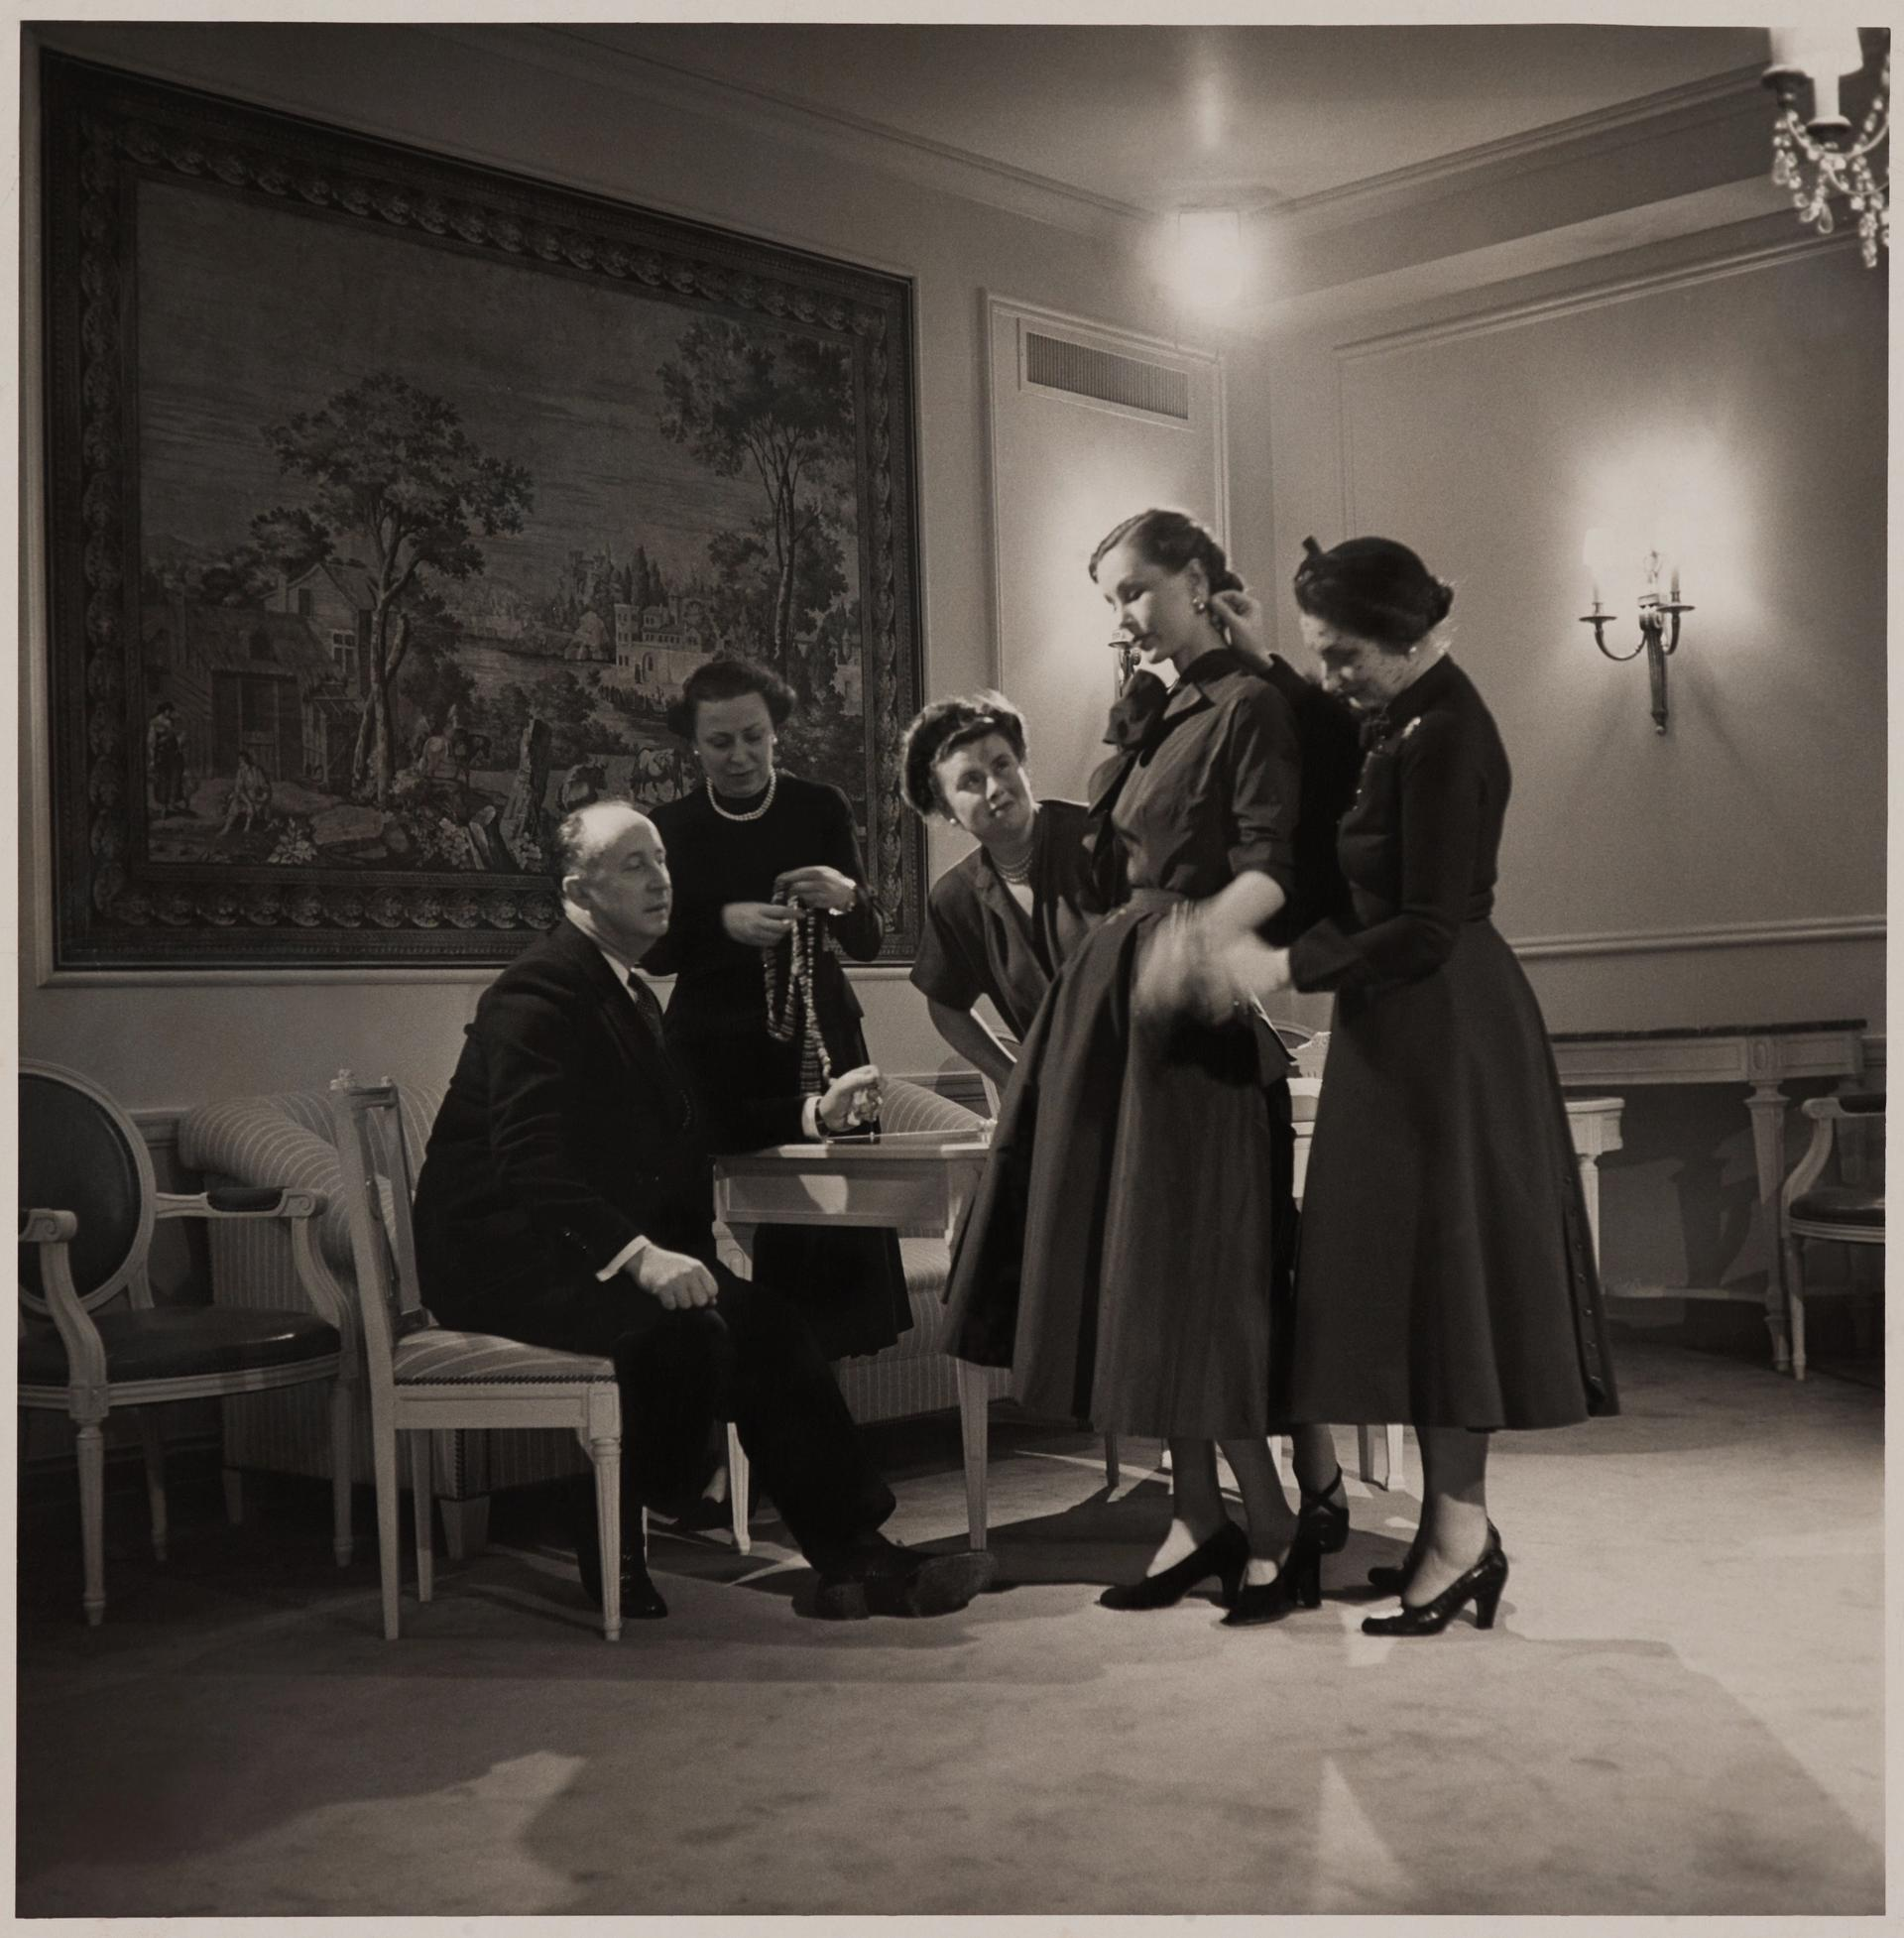 Fitting in a Christian Dior–New York salon with (left to right) Christian Dior, Raymonde Zehnacker, Marguerite Carré, Mrs. Knoll, and Mizza Bricard, 1948 Brooklyn Museum Libraries and Archives. BMA artist files